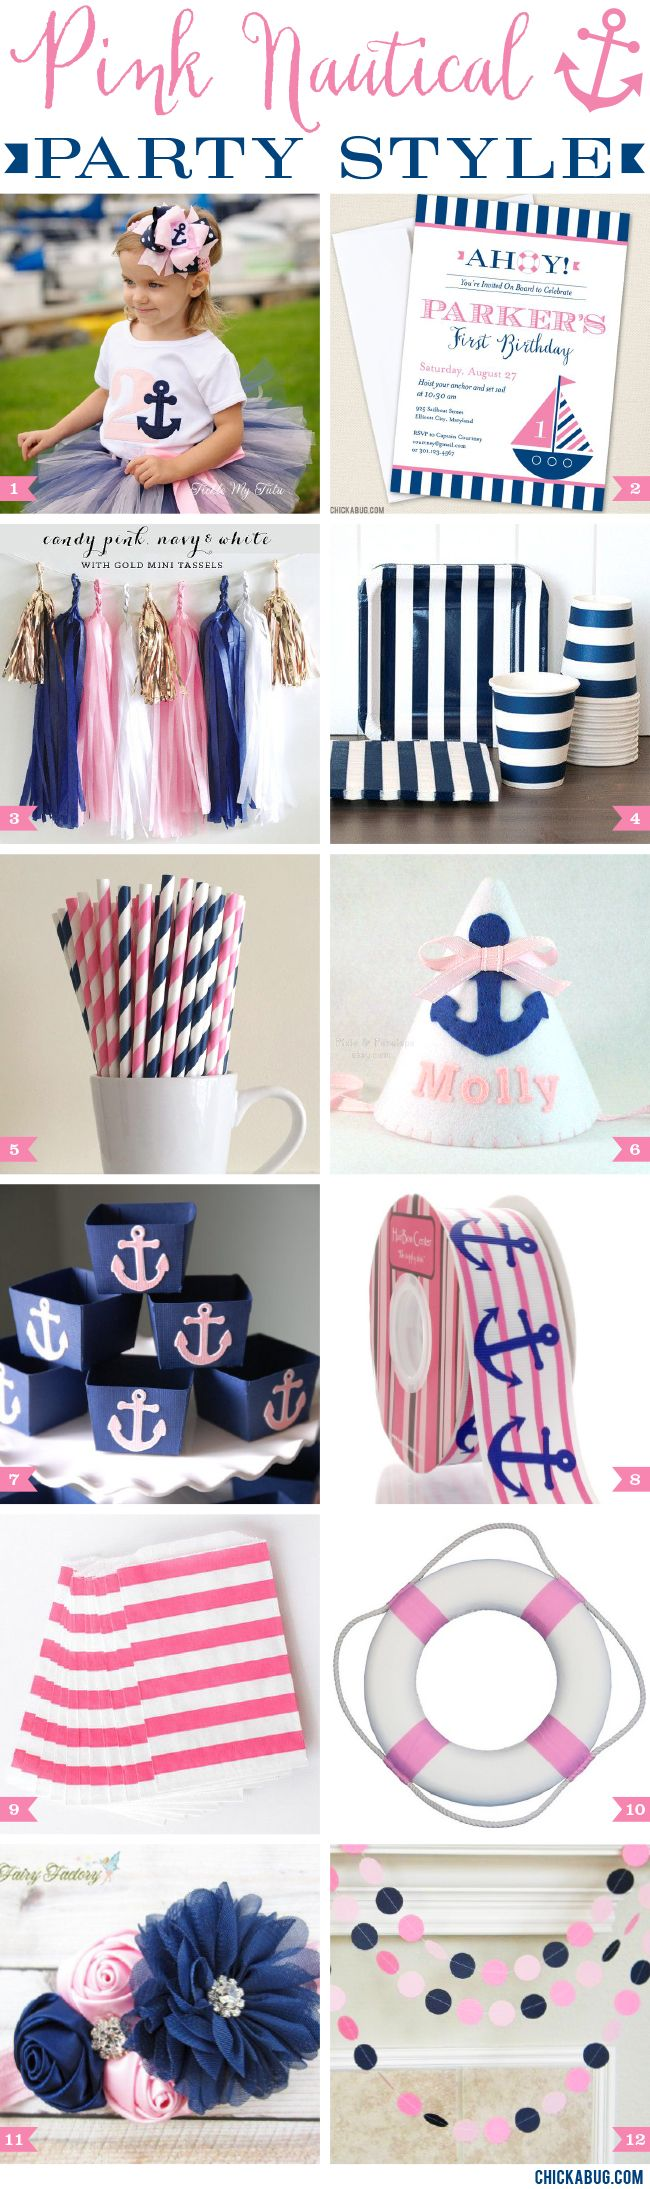 Pink nautical party style! Gorgeous pink and navy party supplies for a pink nautical birthday party